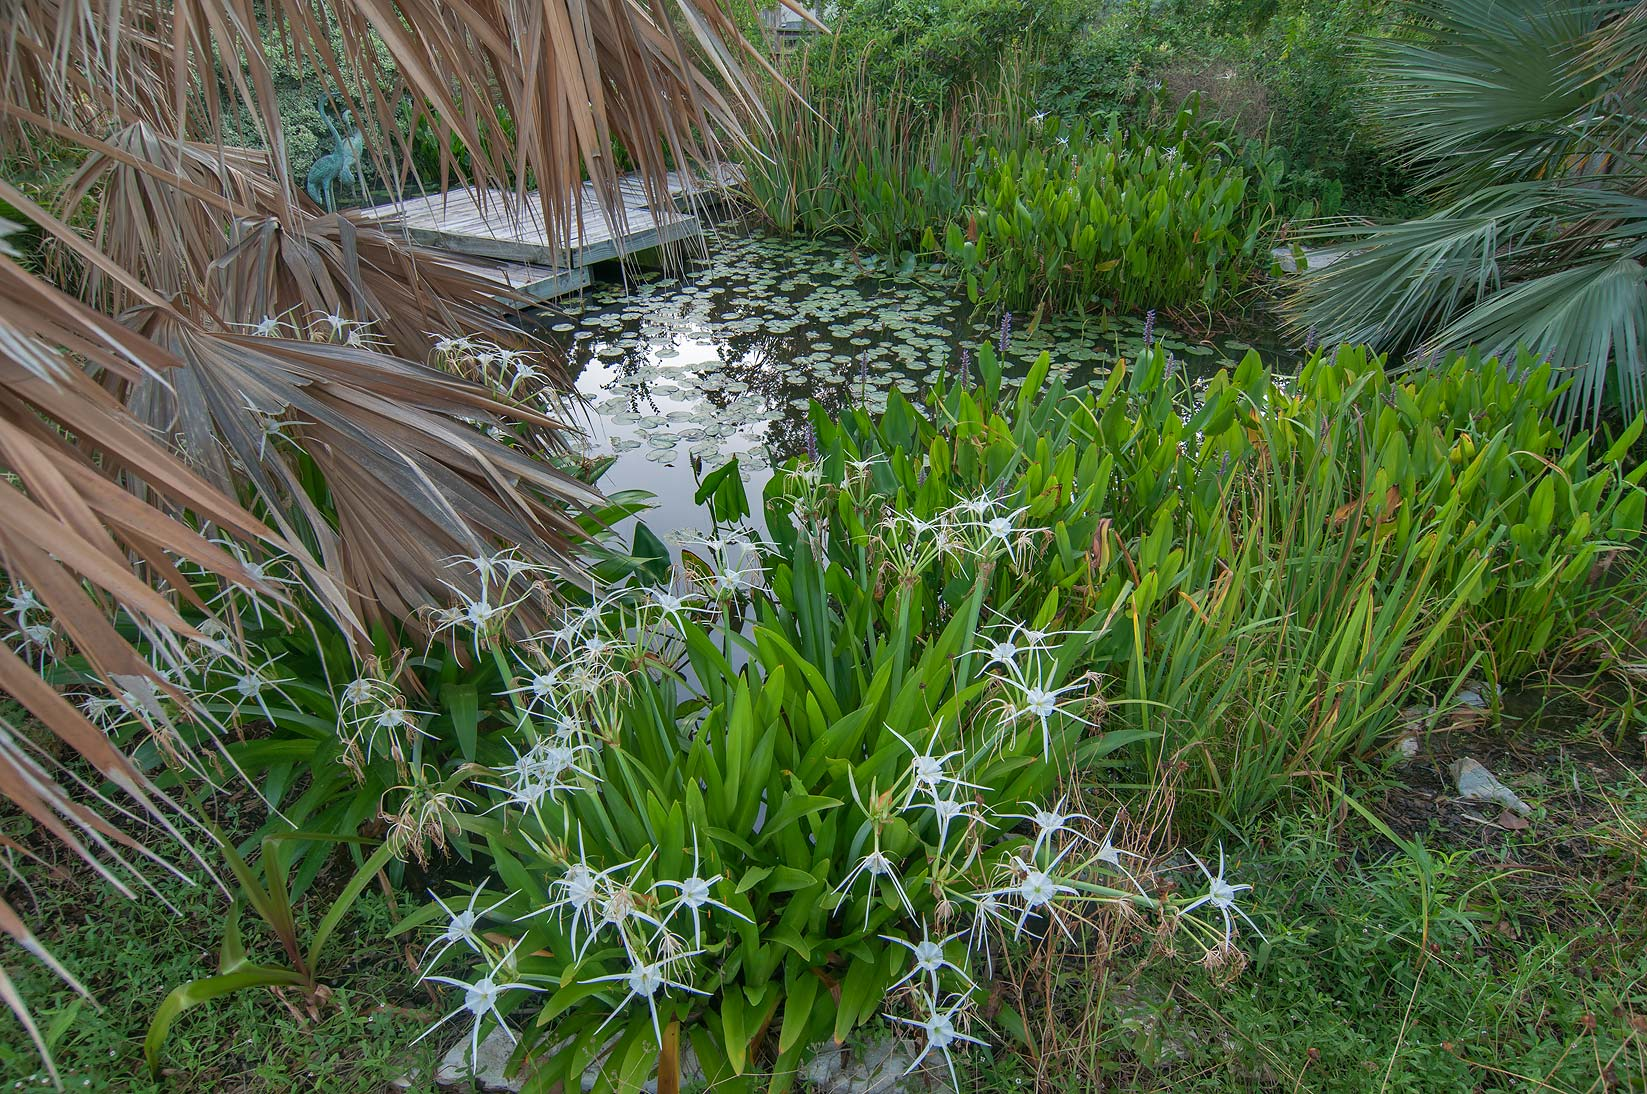 Spider lilies in Aquatic Garden in TAMU...M University. College Station, Texas